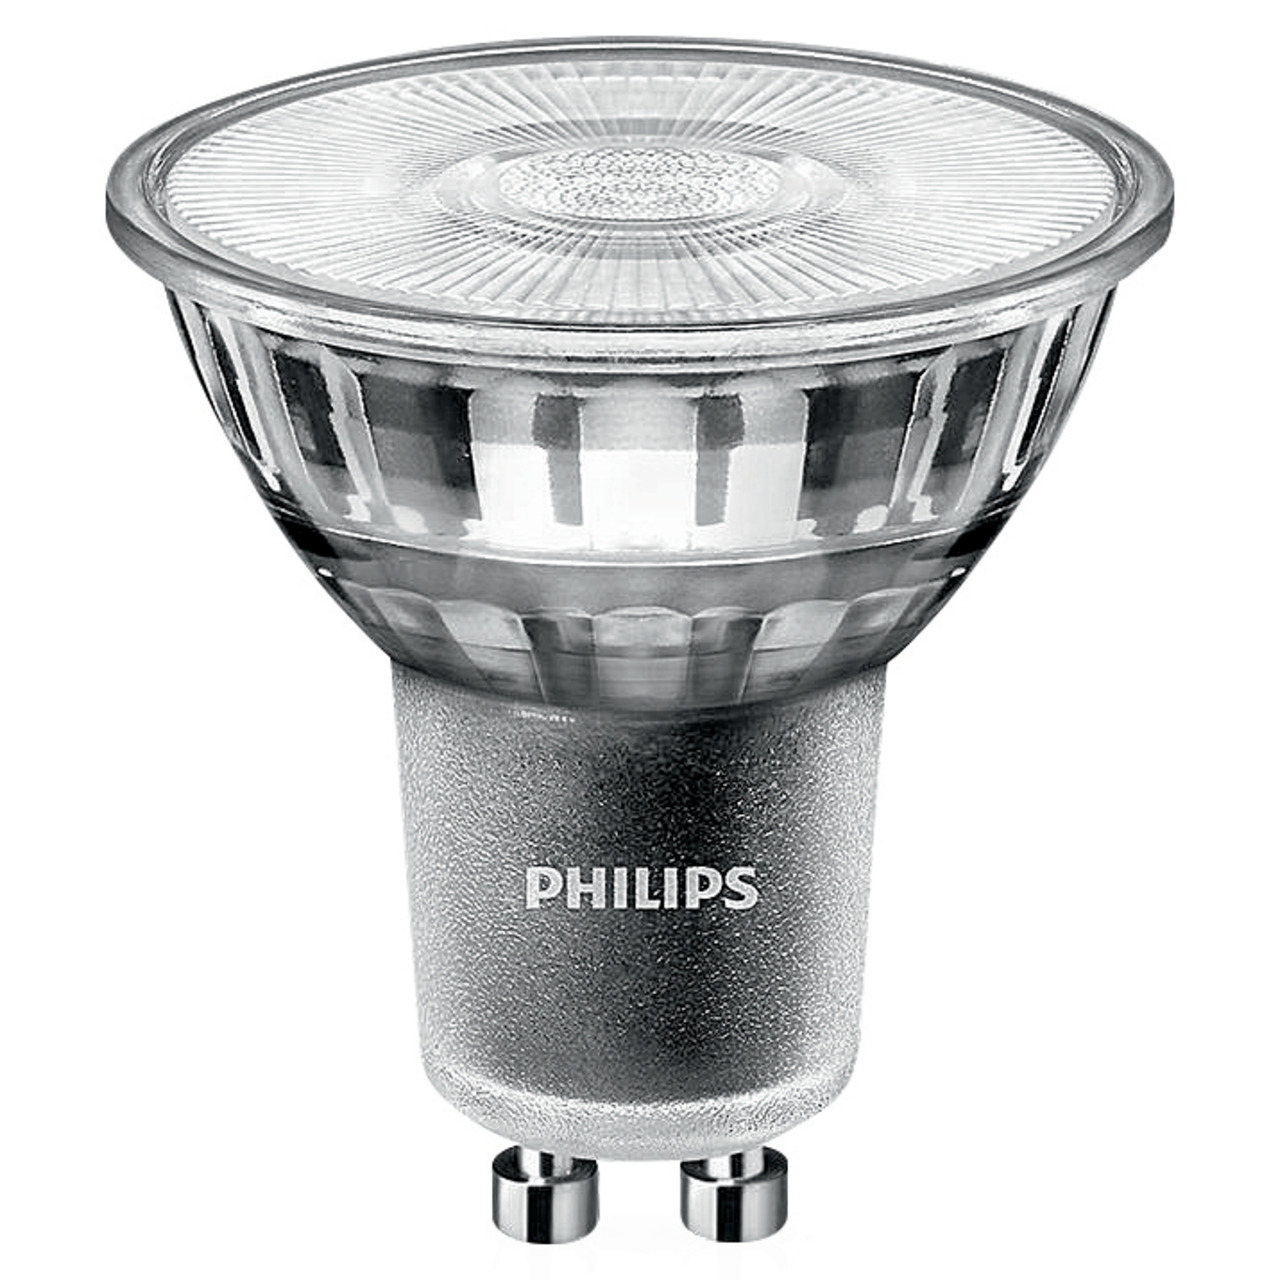 Philips MASTER LEDspot ExpertColor 5-5-W-GU10-LED-Lampe- 97 Ra- warmweiss- dimmbar